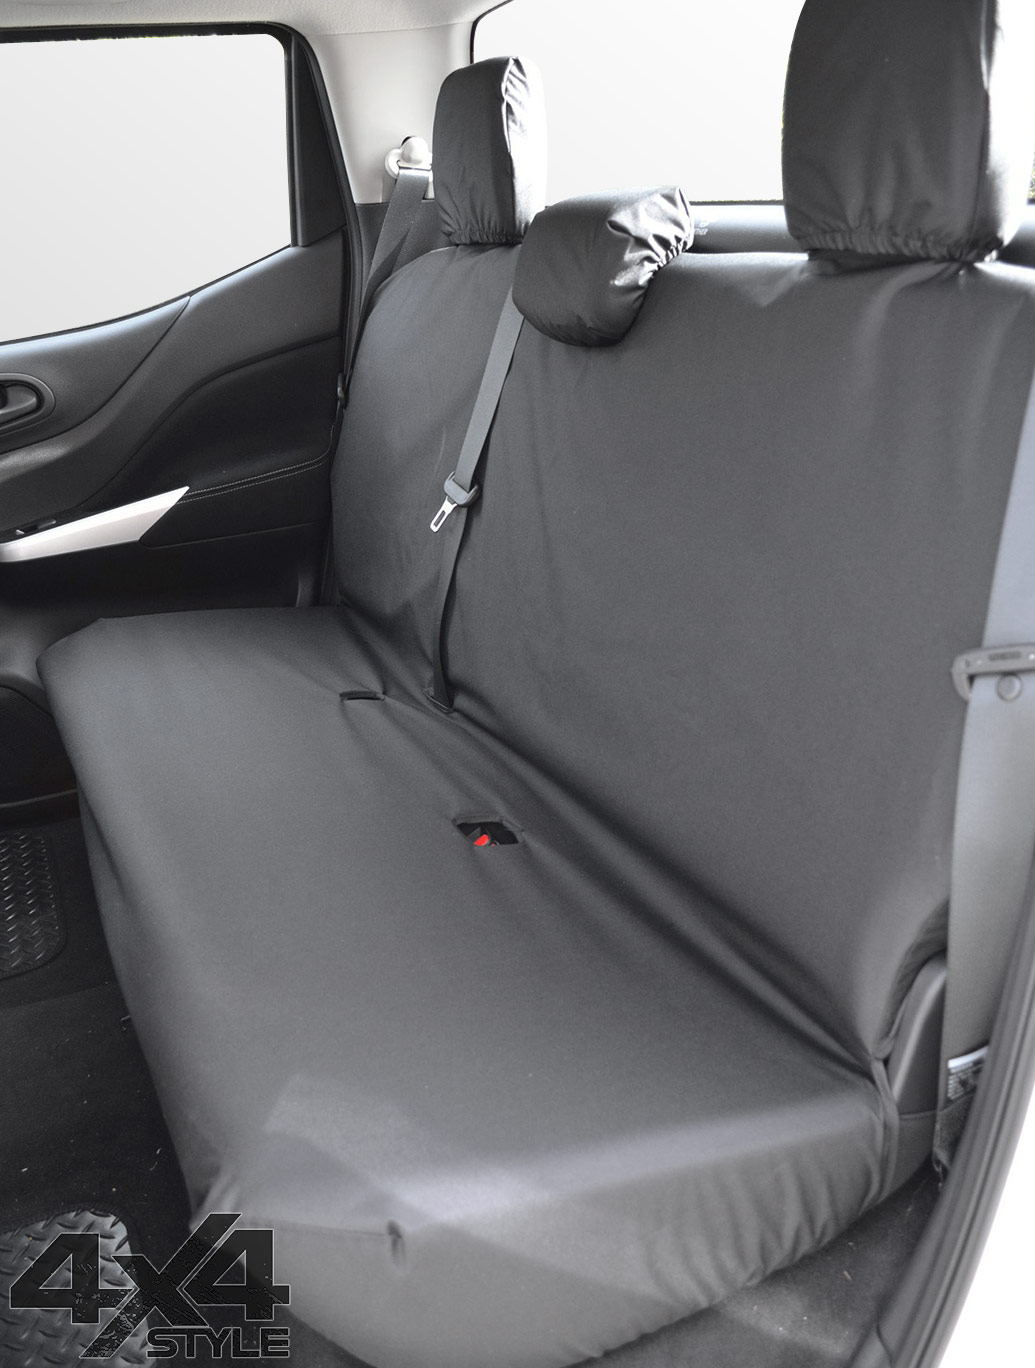 Tailored Fit Rear Bench Black Seat Covers - Nissan Navara 2016>